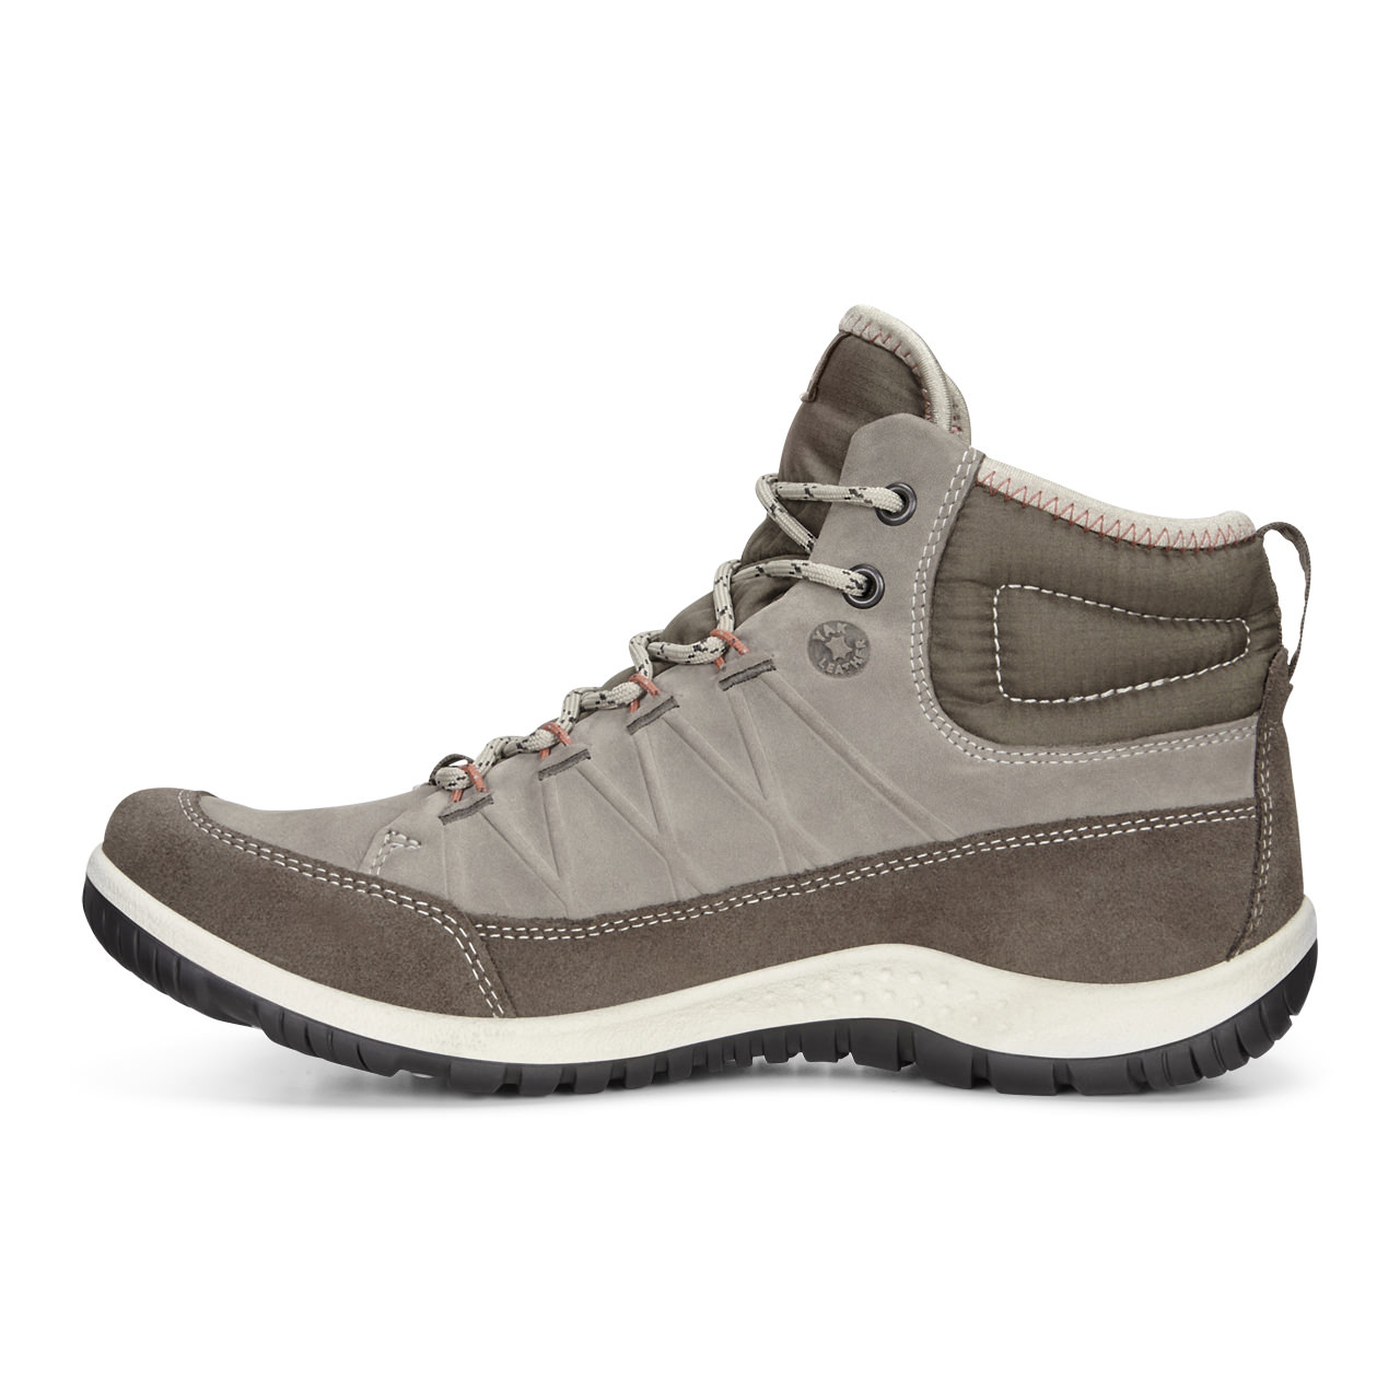 ECCO Womens Aspina GTX High